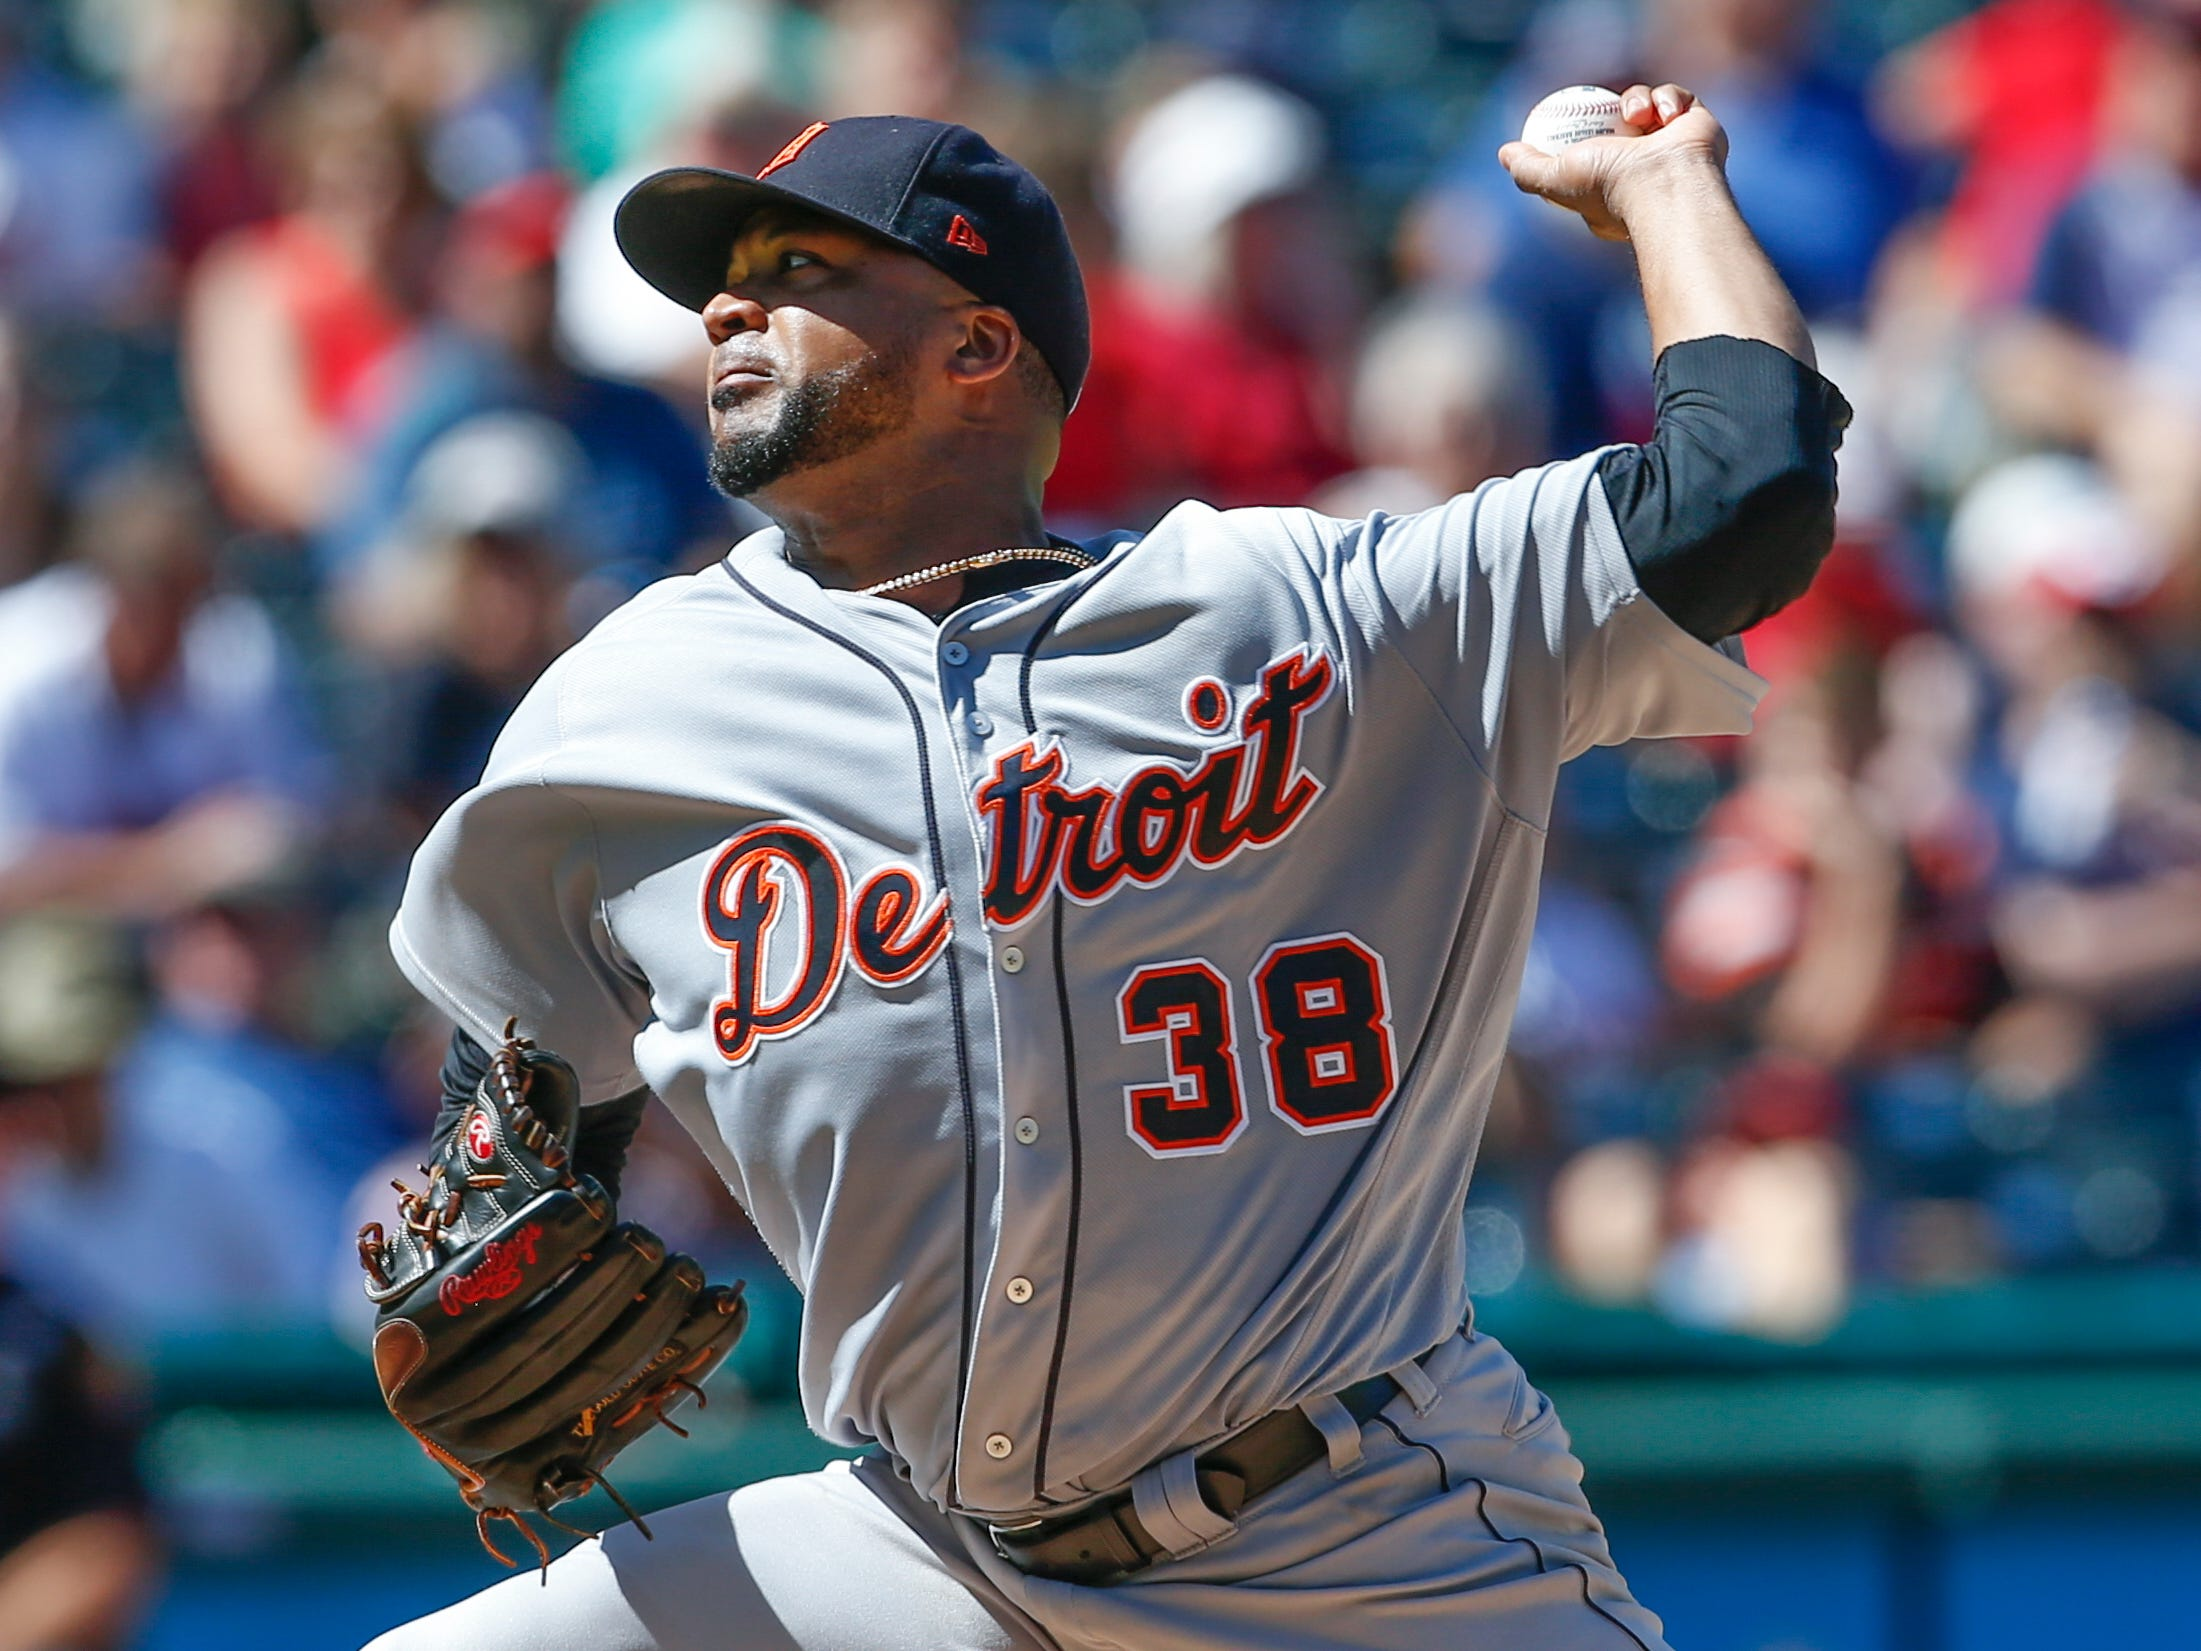 Detroit Tigers starting pitcher Francisco Liriano delivers against the Cleveland Indians during the second inning.